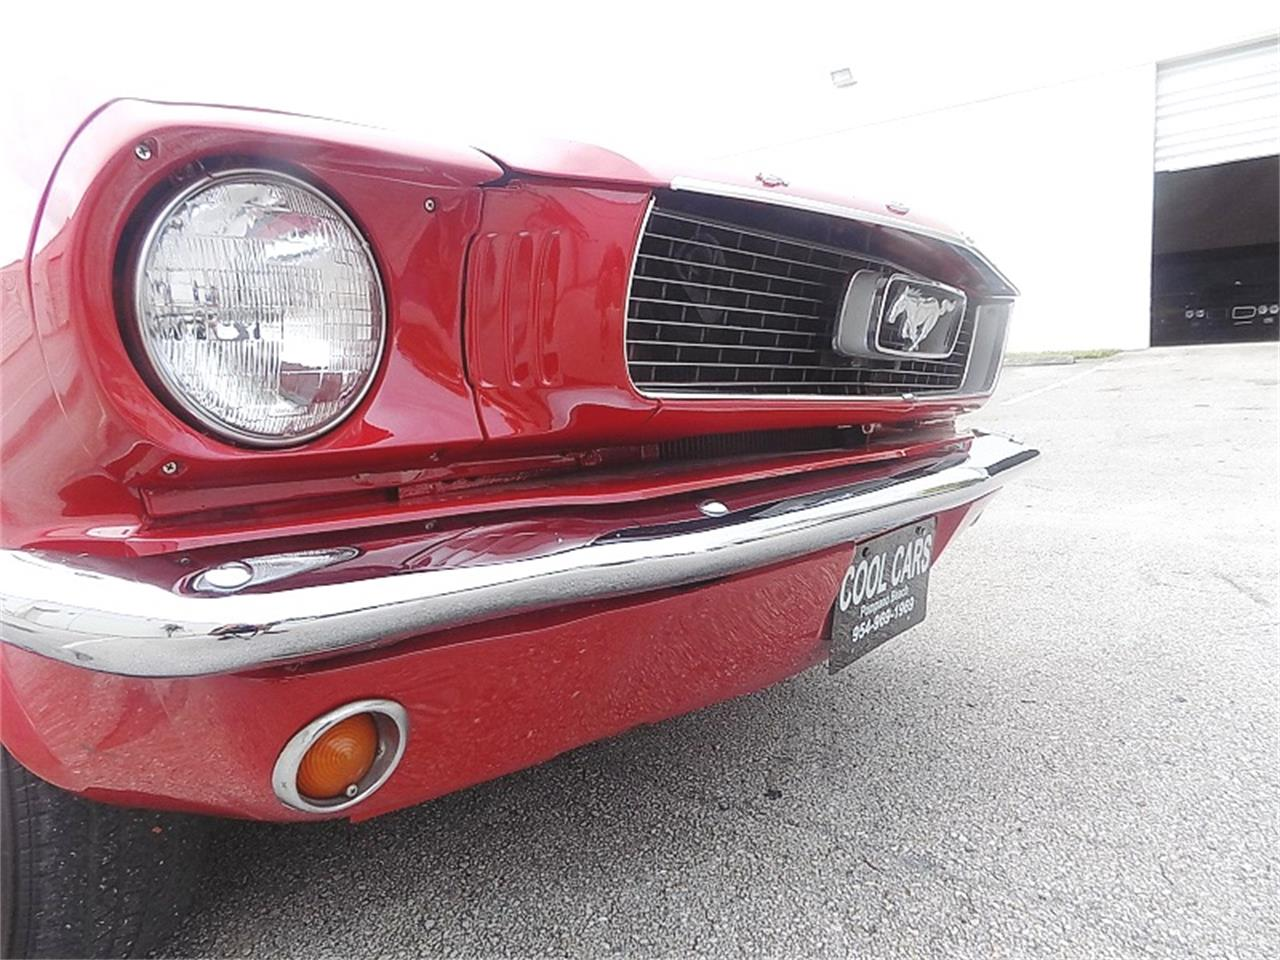 Large Picture of '66 Ford Mustang located in Florida Offered by Cool Cars - QB3J